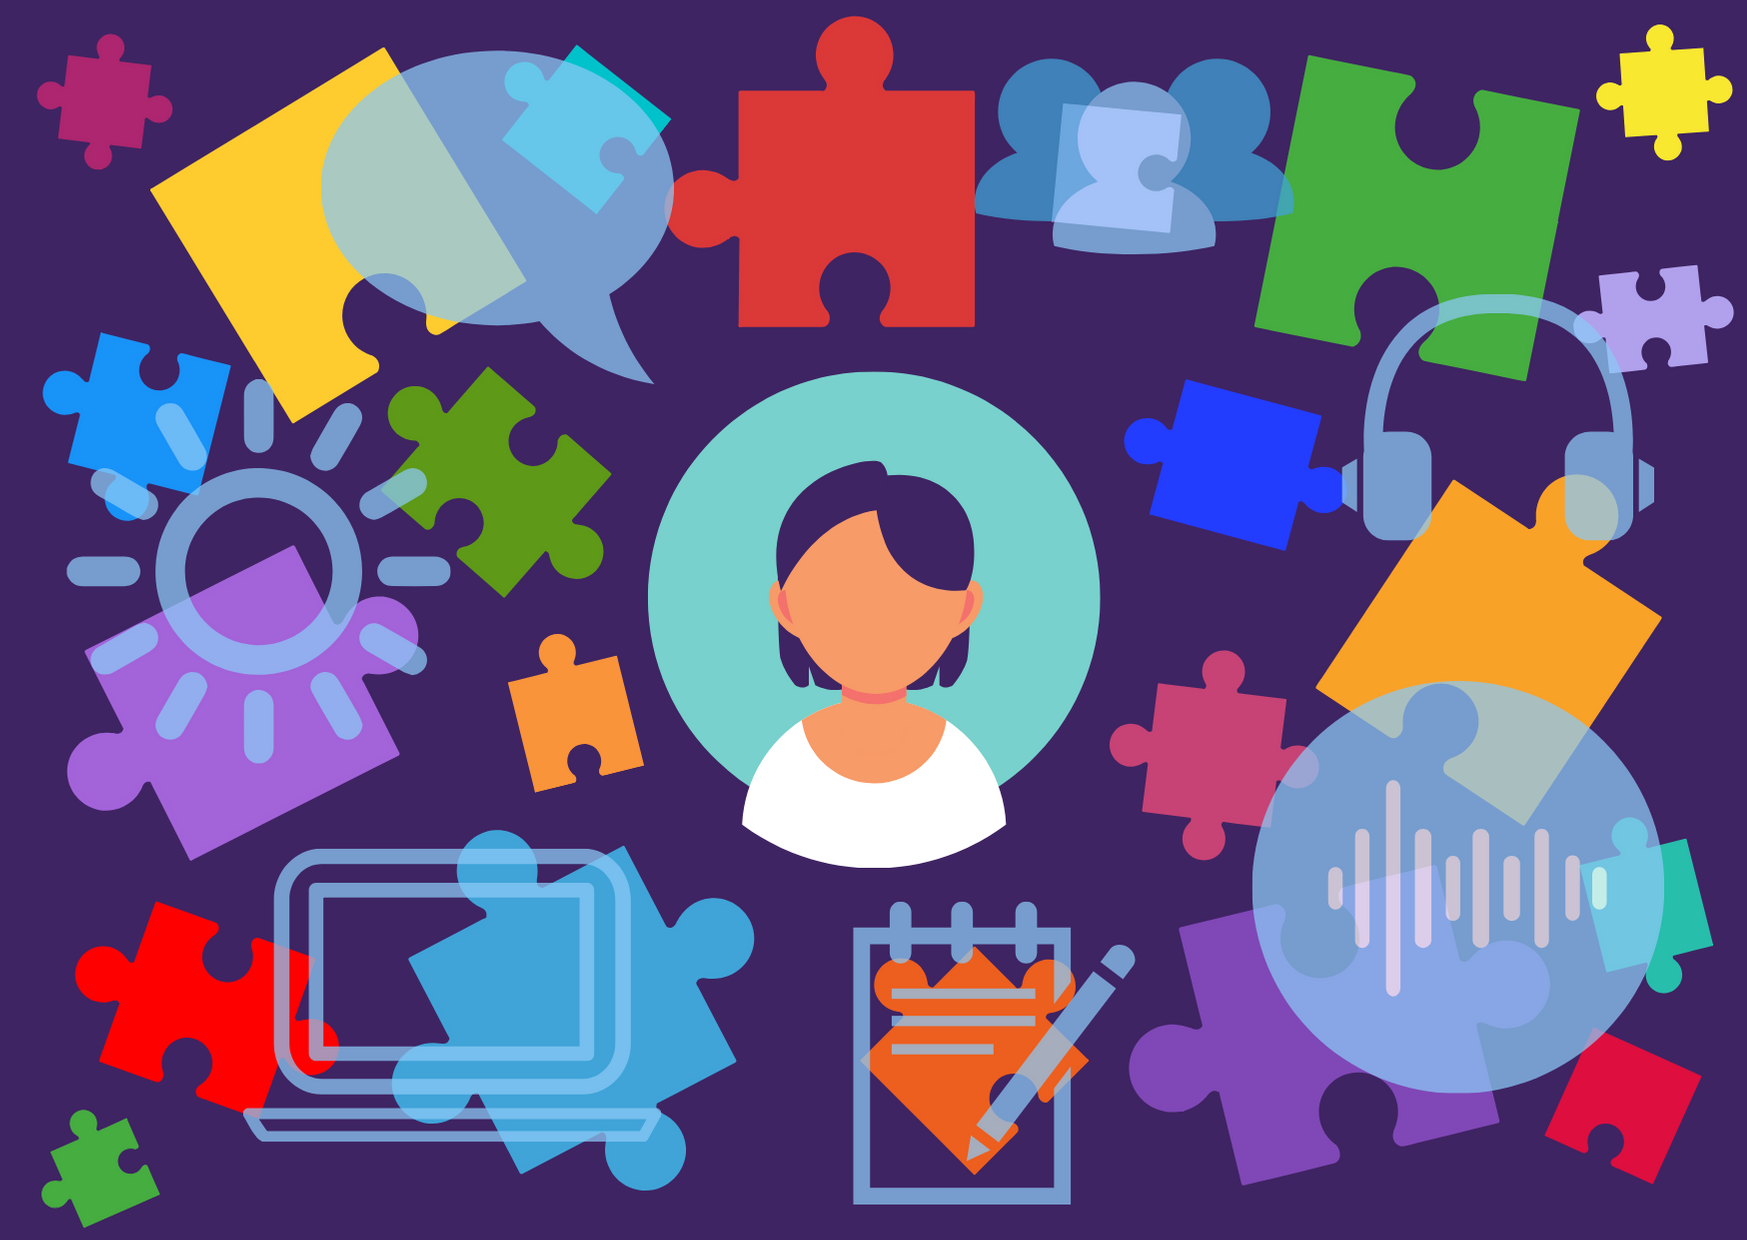 An illustration of a person's head and shoulders surrounded by colourful puzzle pieces, and icons for speech, people, sound, writing, screens, and brightness.